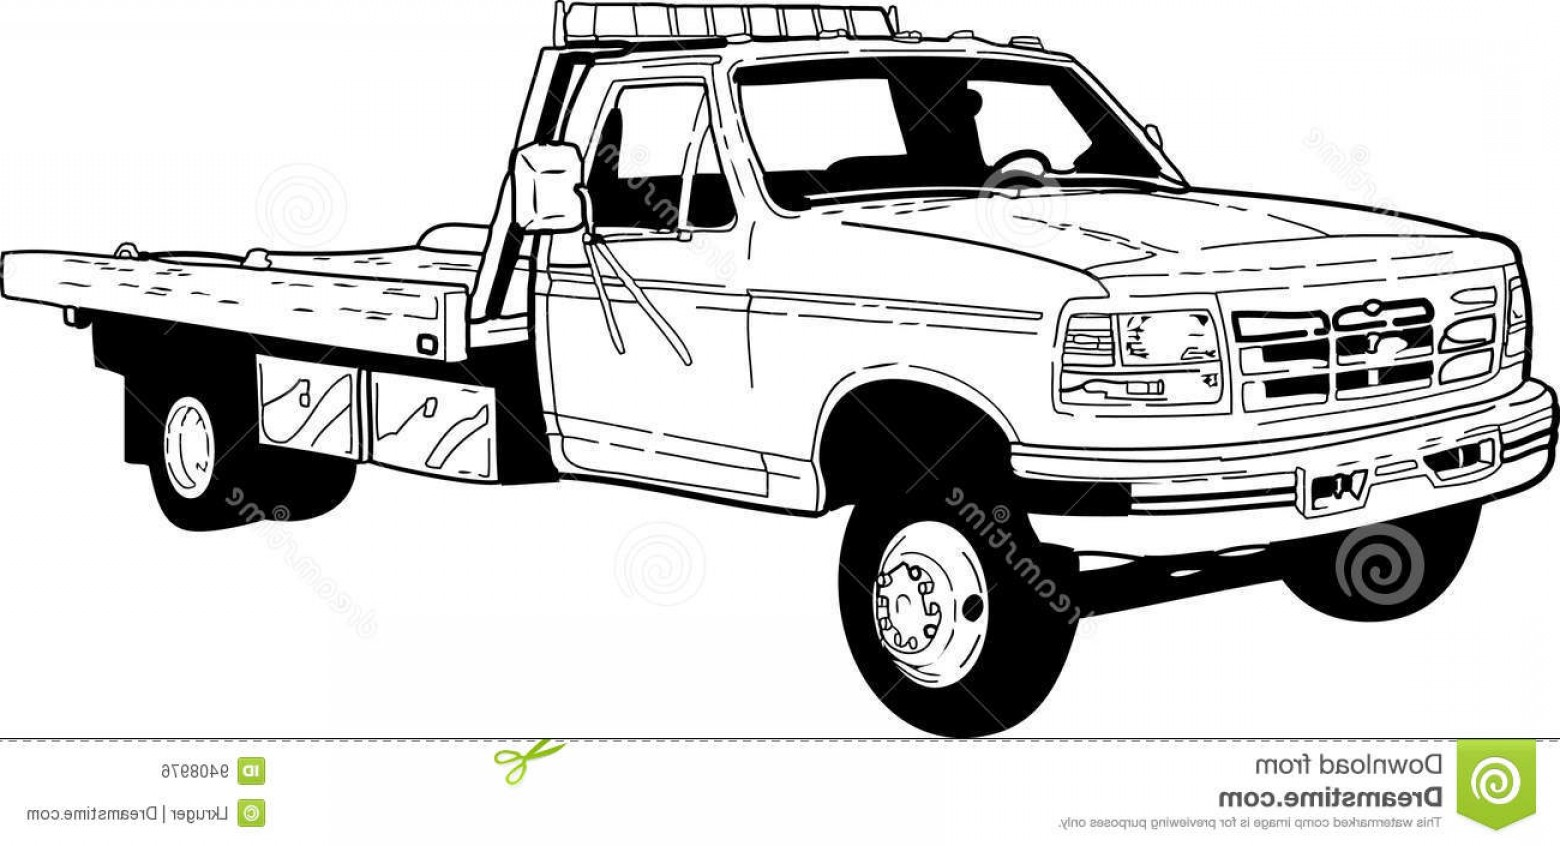 Towing Vector Clip Art: Royalty Free Stock Image Tow Truck Image